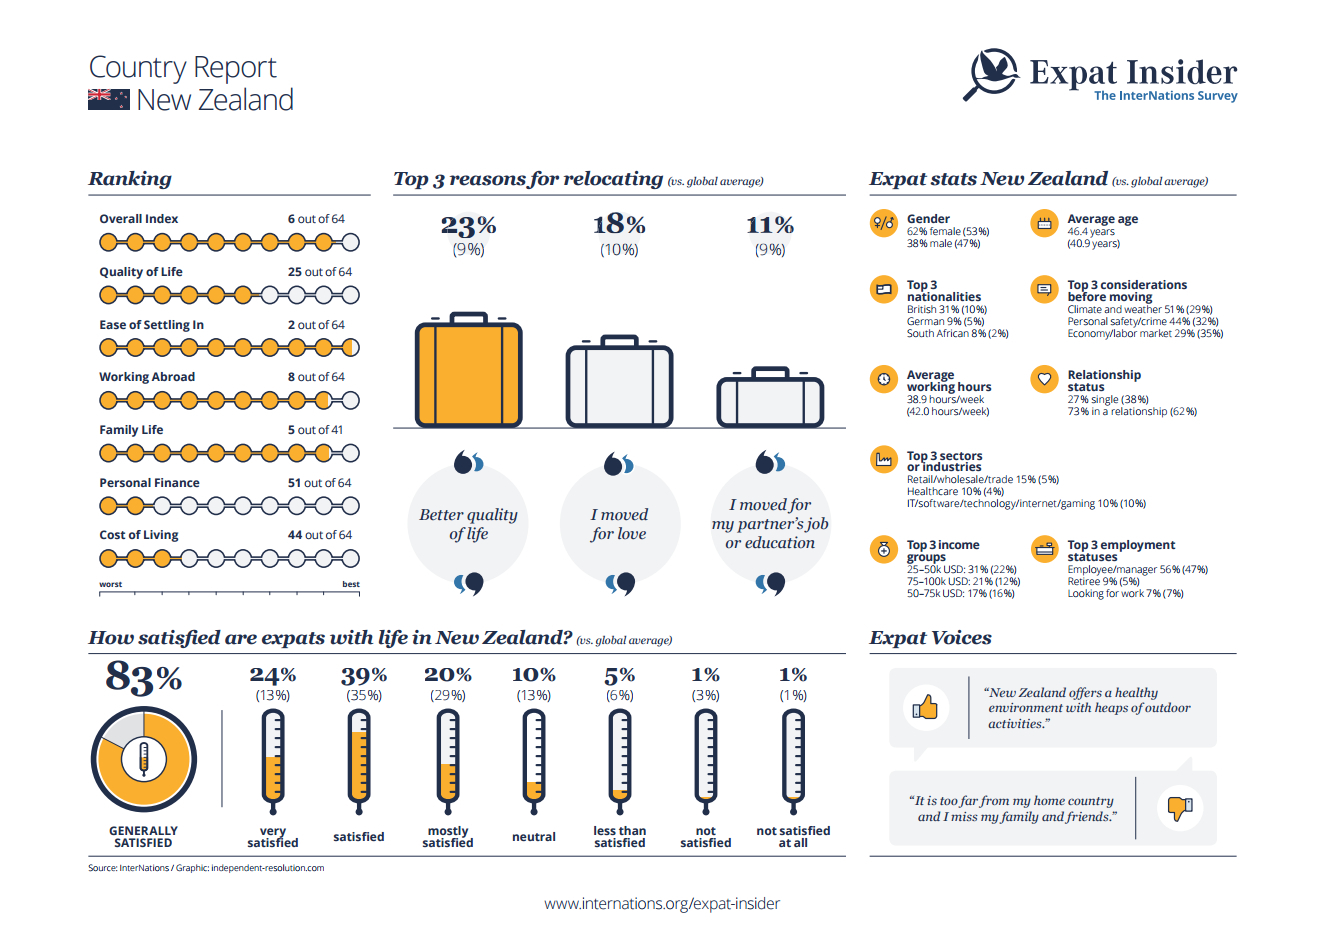 Expat statistics for New Zealand - infographic